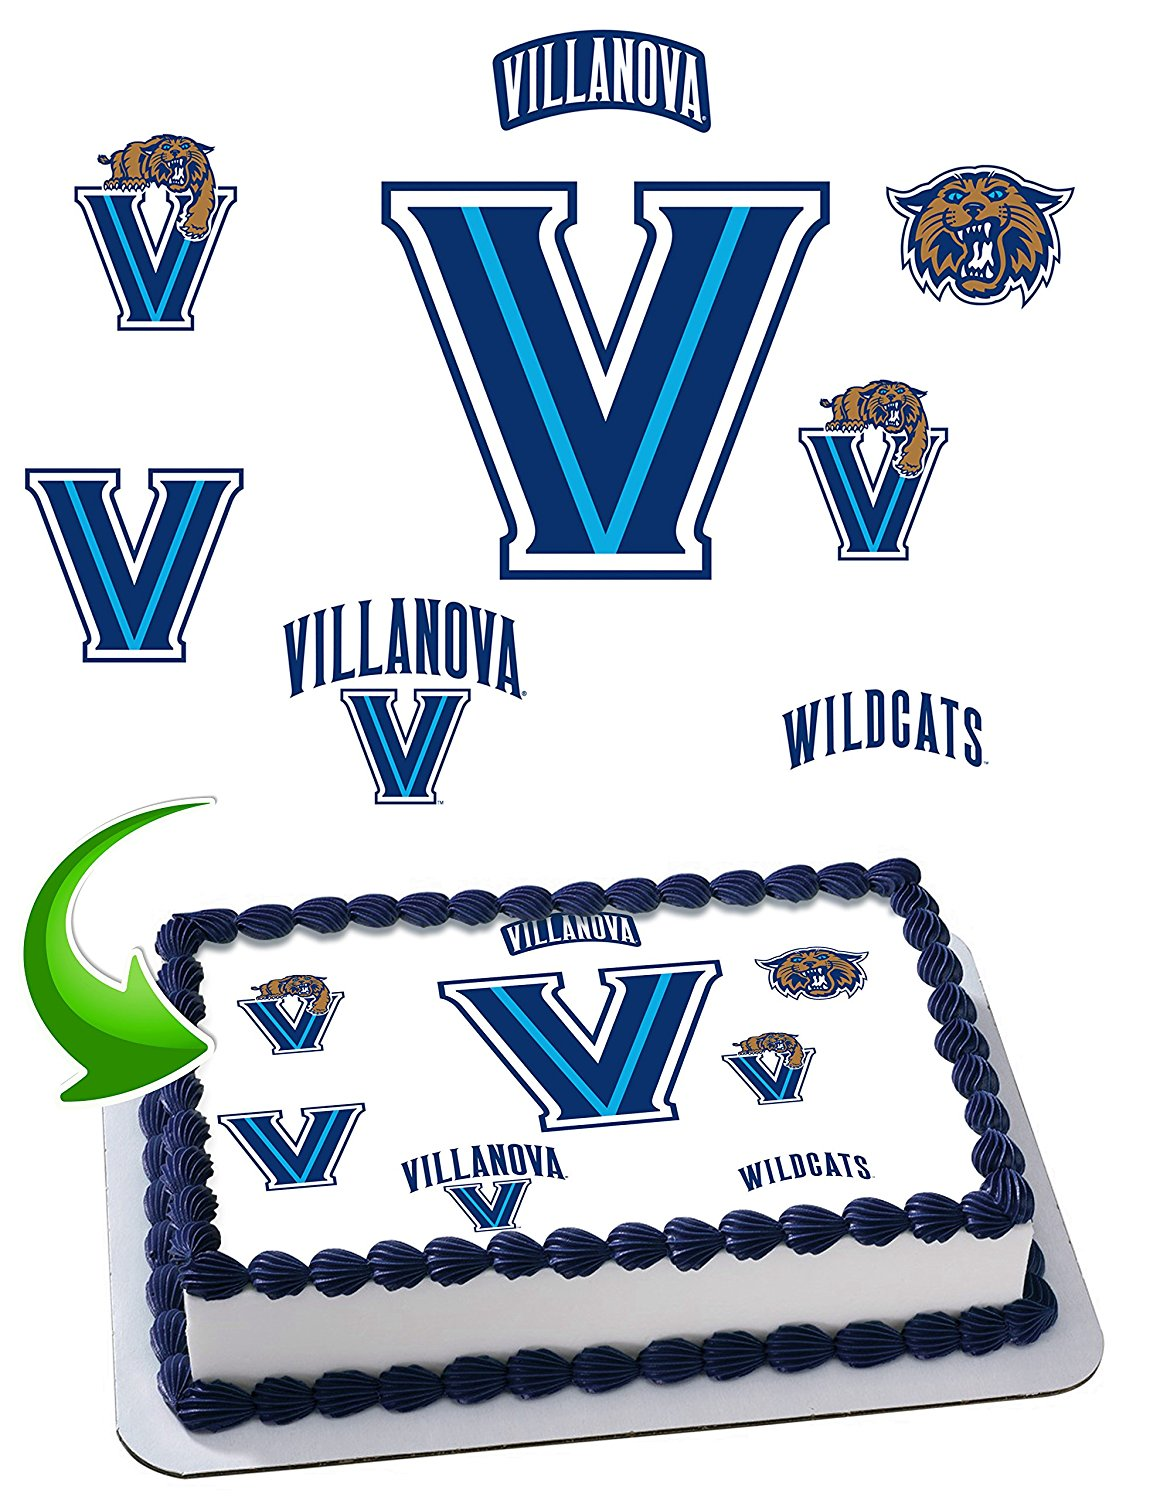 Villanova Wildcats Edible Image Cake Topper Icing Sugar Paper A4 Sheet Edible Frosting Photo Cake 1/4 ~ Best Edible Image for cake